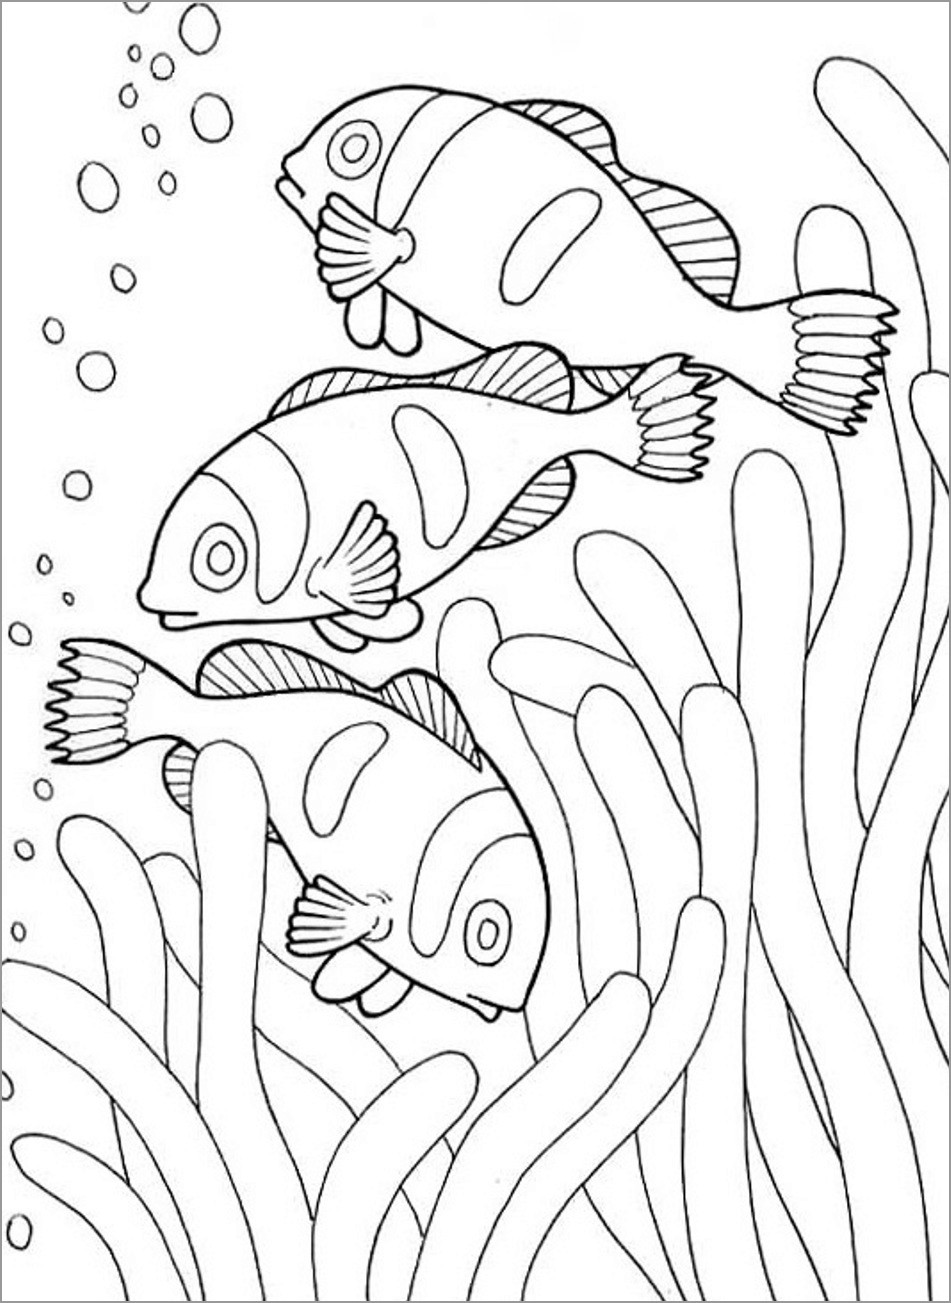 clownfish drawing clown fish with bubbles coloring pages best place to color clownfish drawing